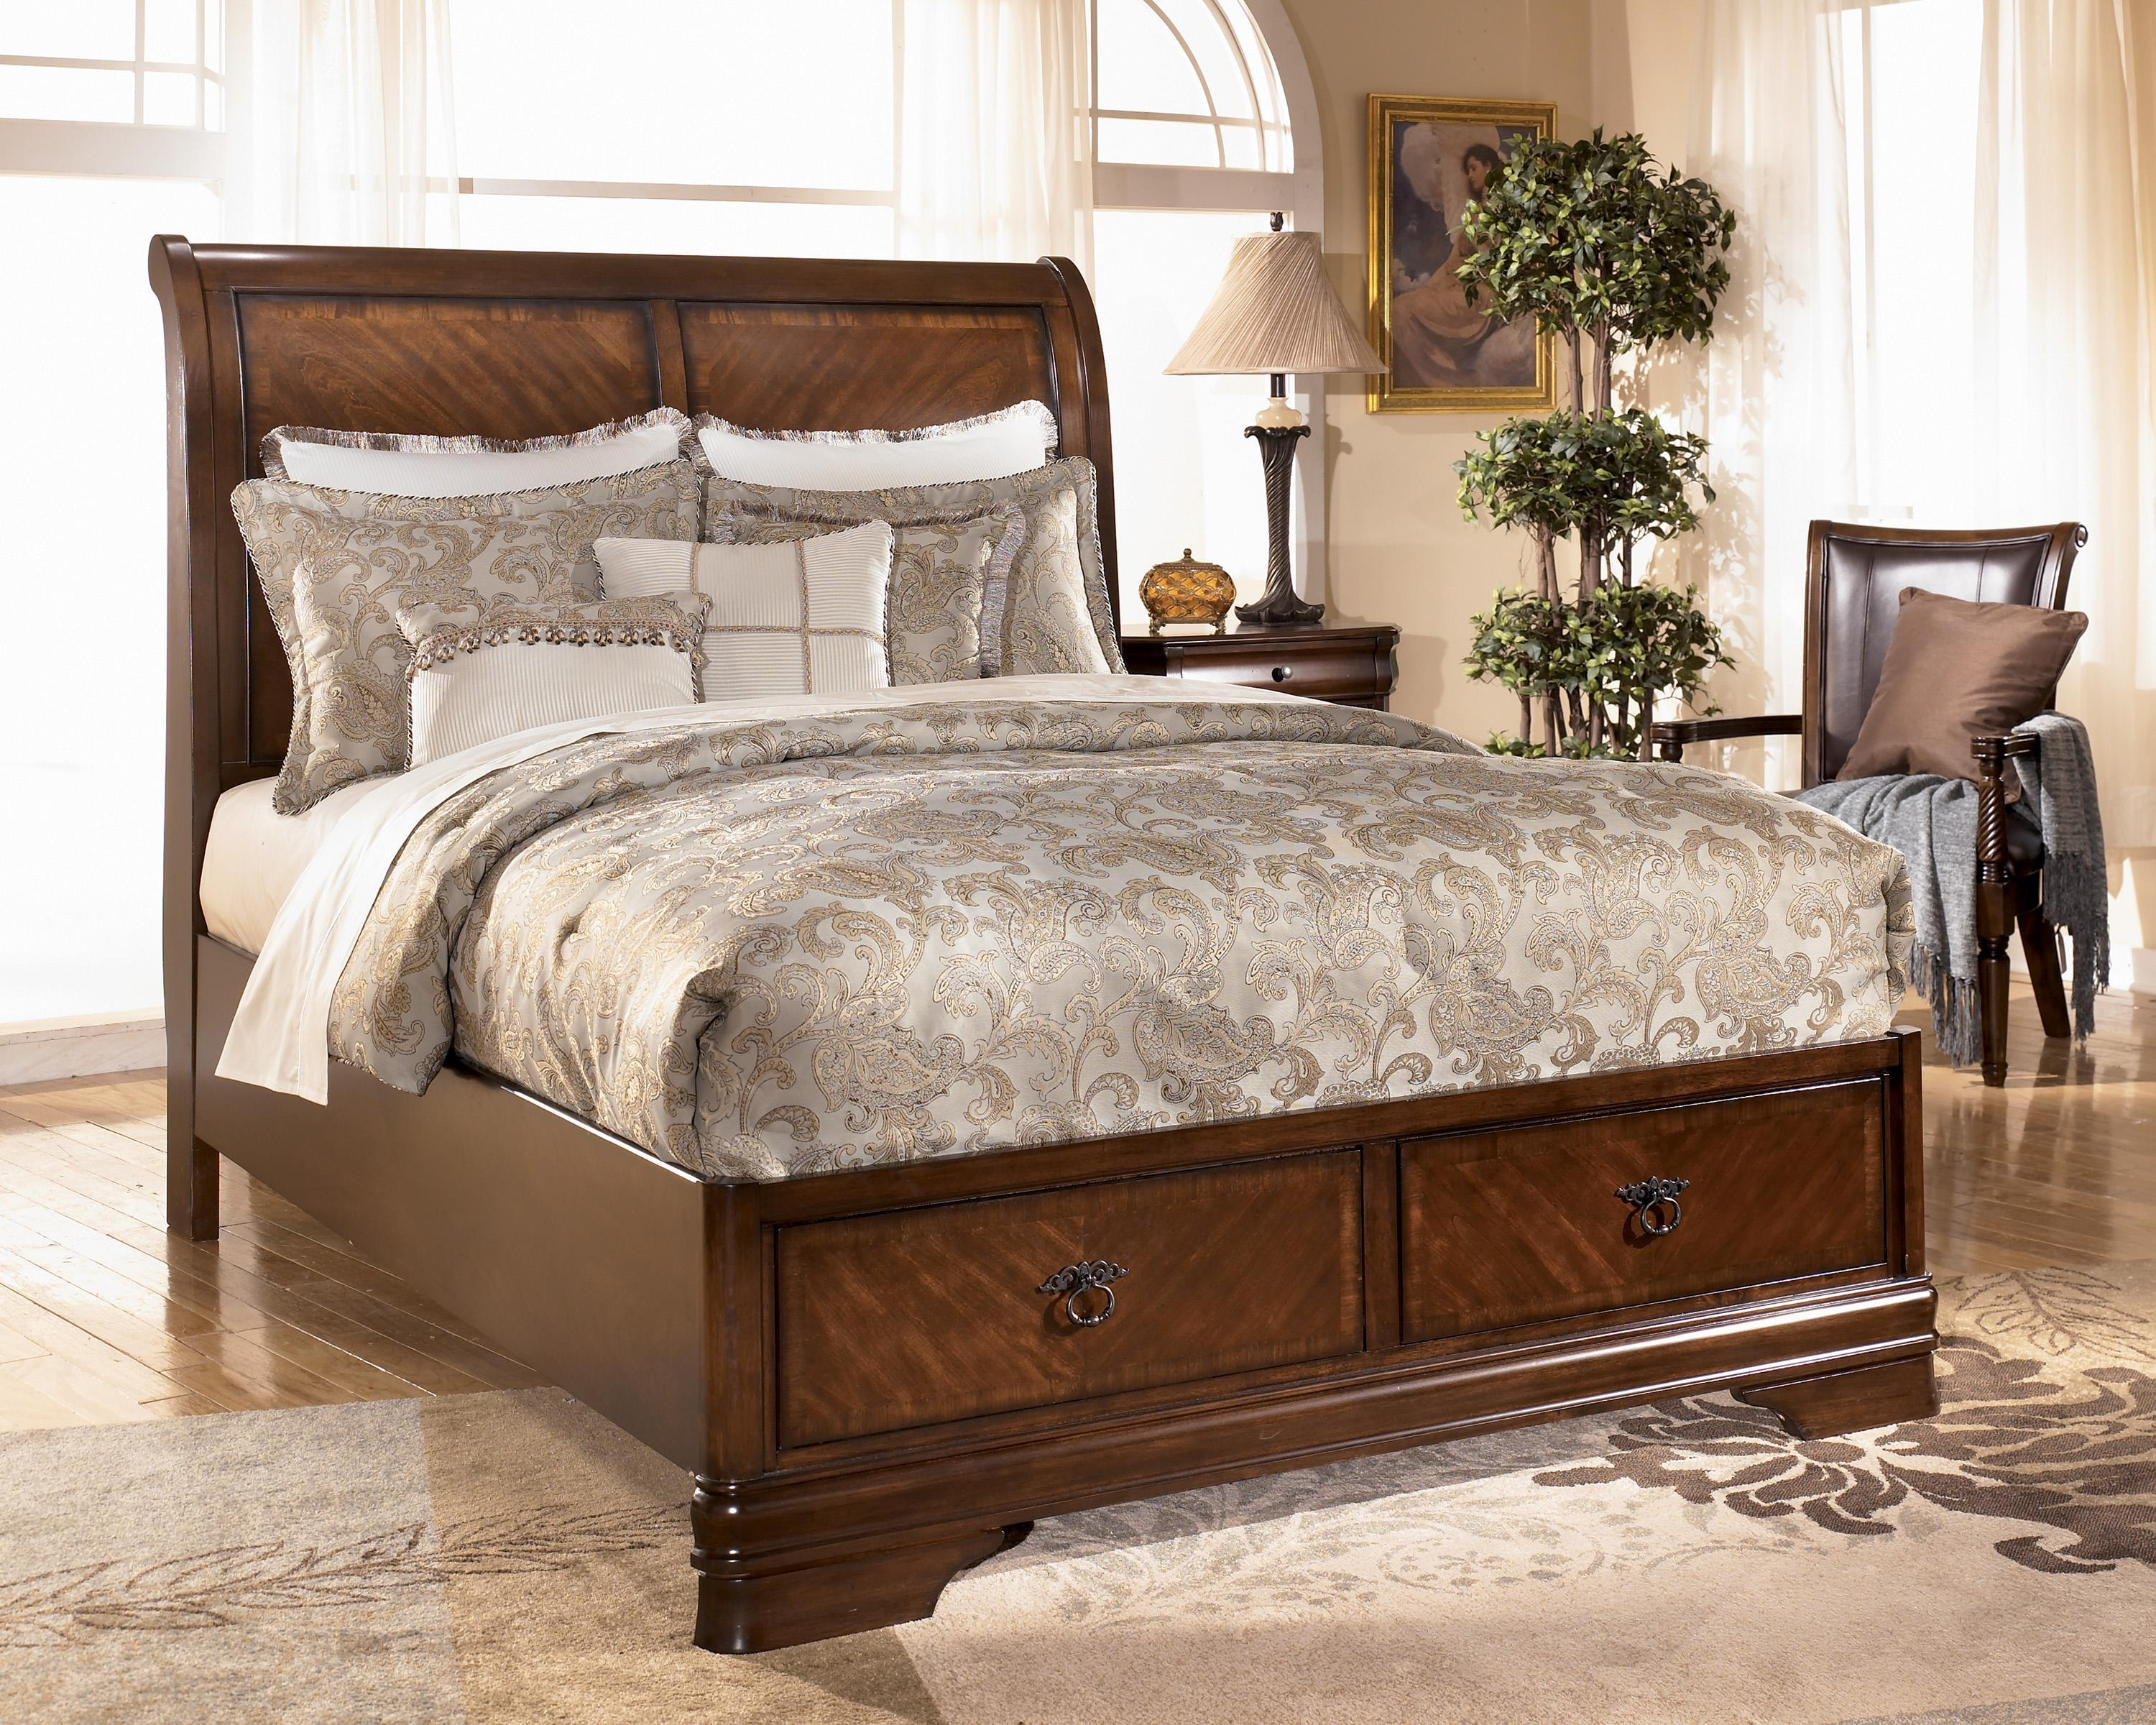 Ashley Furniture King Storage Bed 3000 x 2400